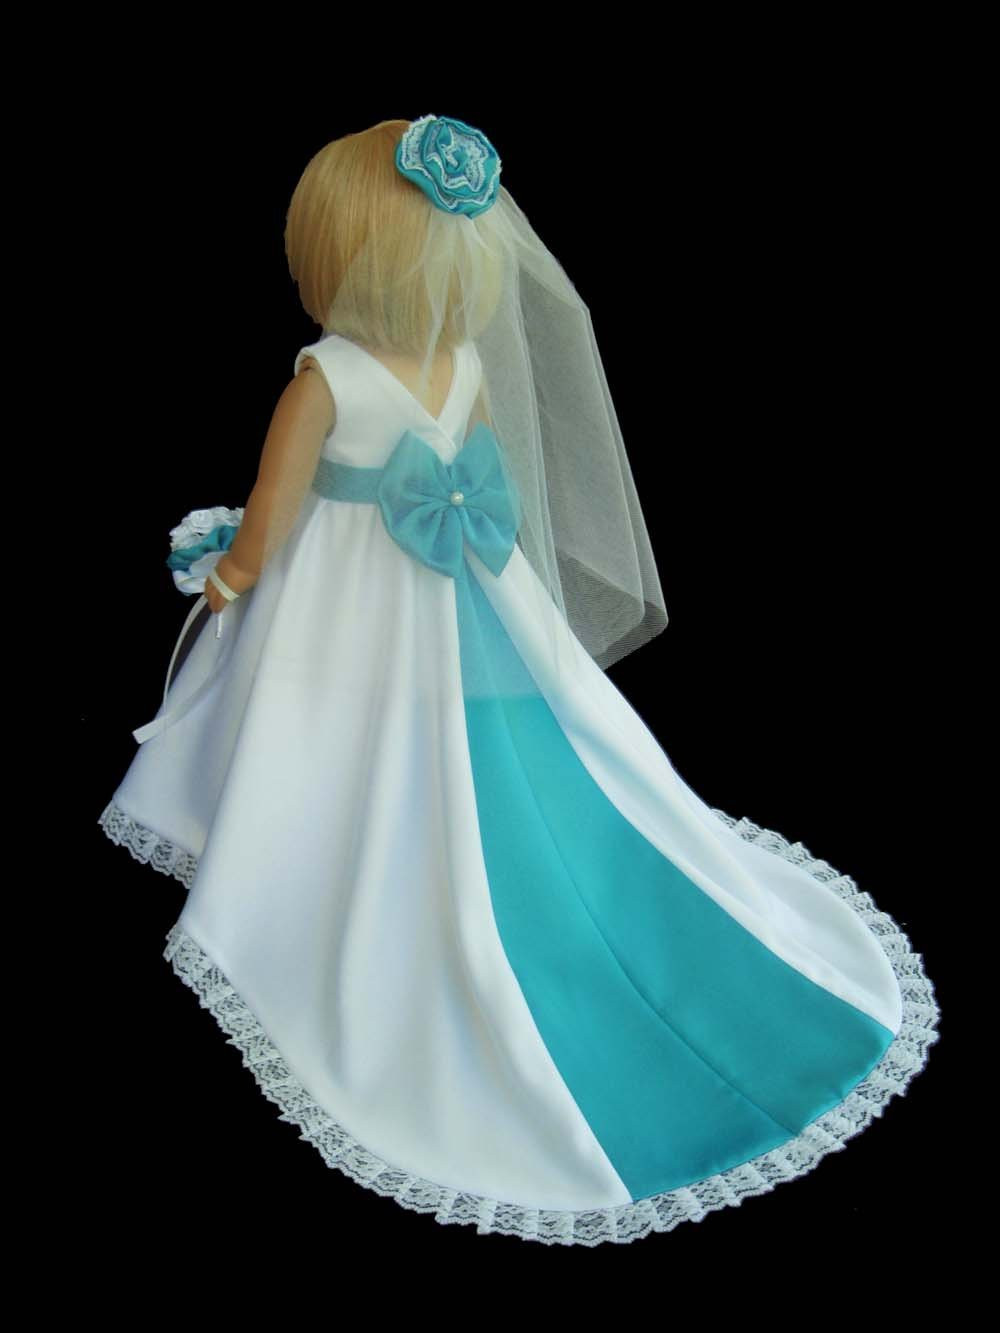 Best Of 301 Moved Permanently American Girl Doll Wedding Dress Of Best Of White Munion Wedding Dress formal Spring Church Fits 18 American Girl Doll Wedding Dress